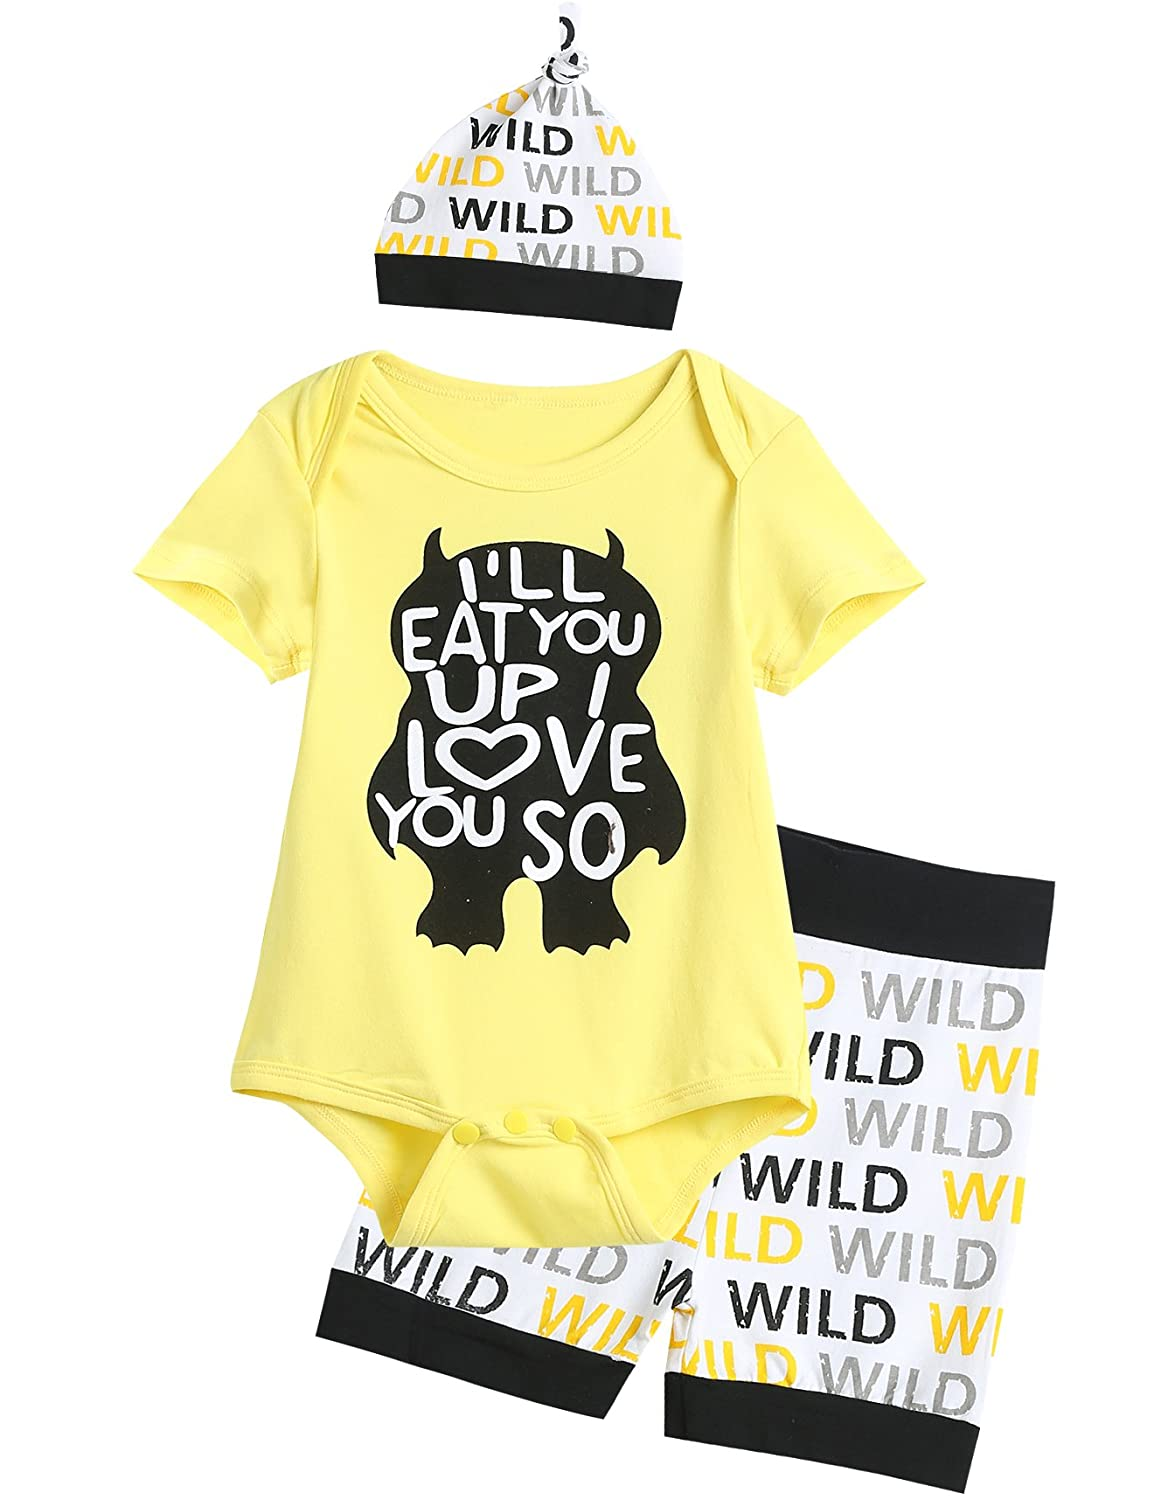 7720cc4dd Clothes nice for Halloween day, daily wear, taking photograph or travel. A  perfect birthday or baby shower gift idea for your little one ever